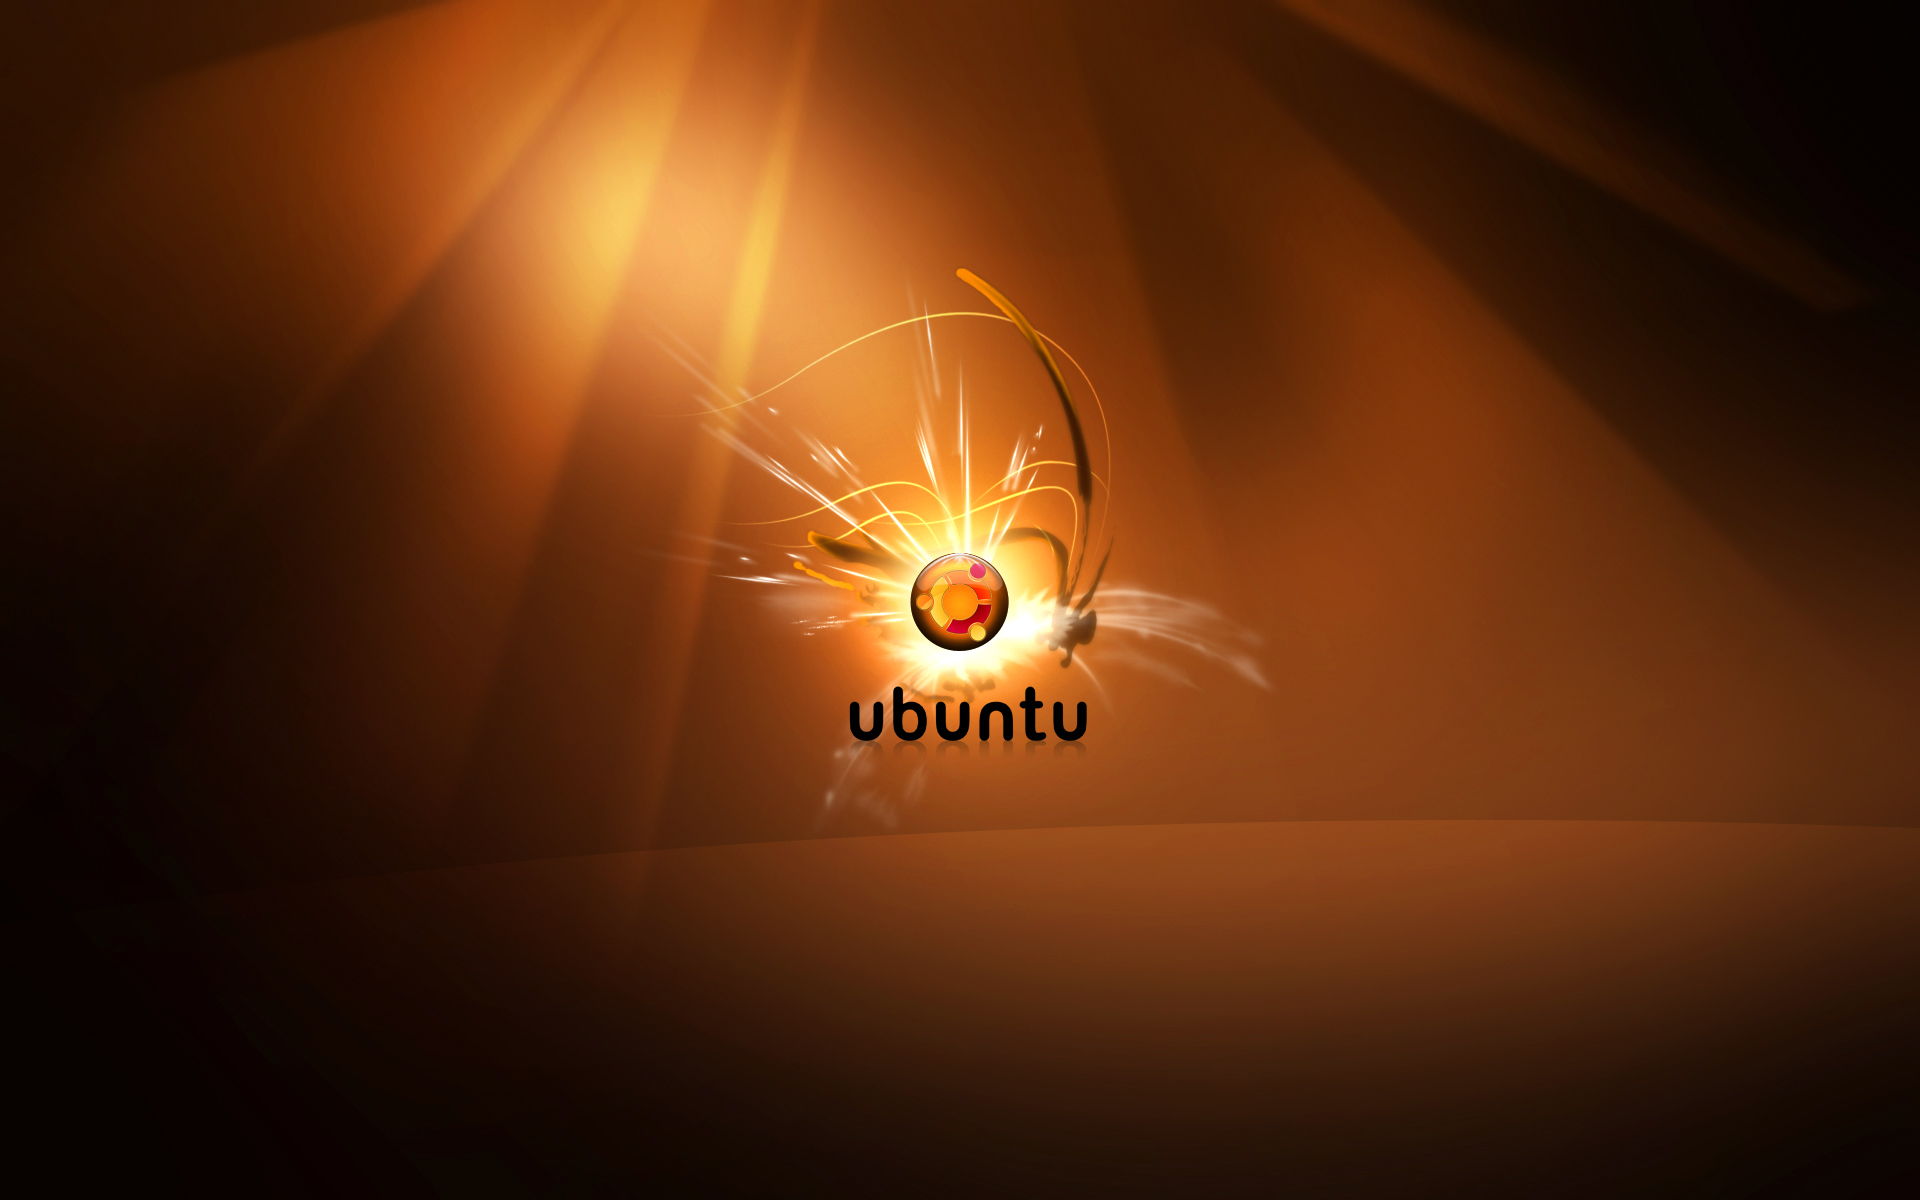 Ubuntu Girls Wallpaper on WallpaperSafari